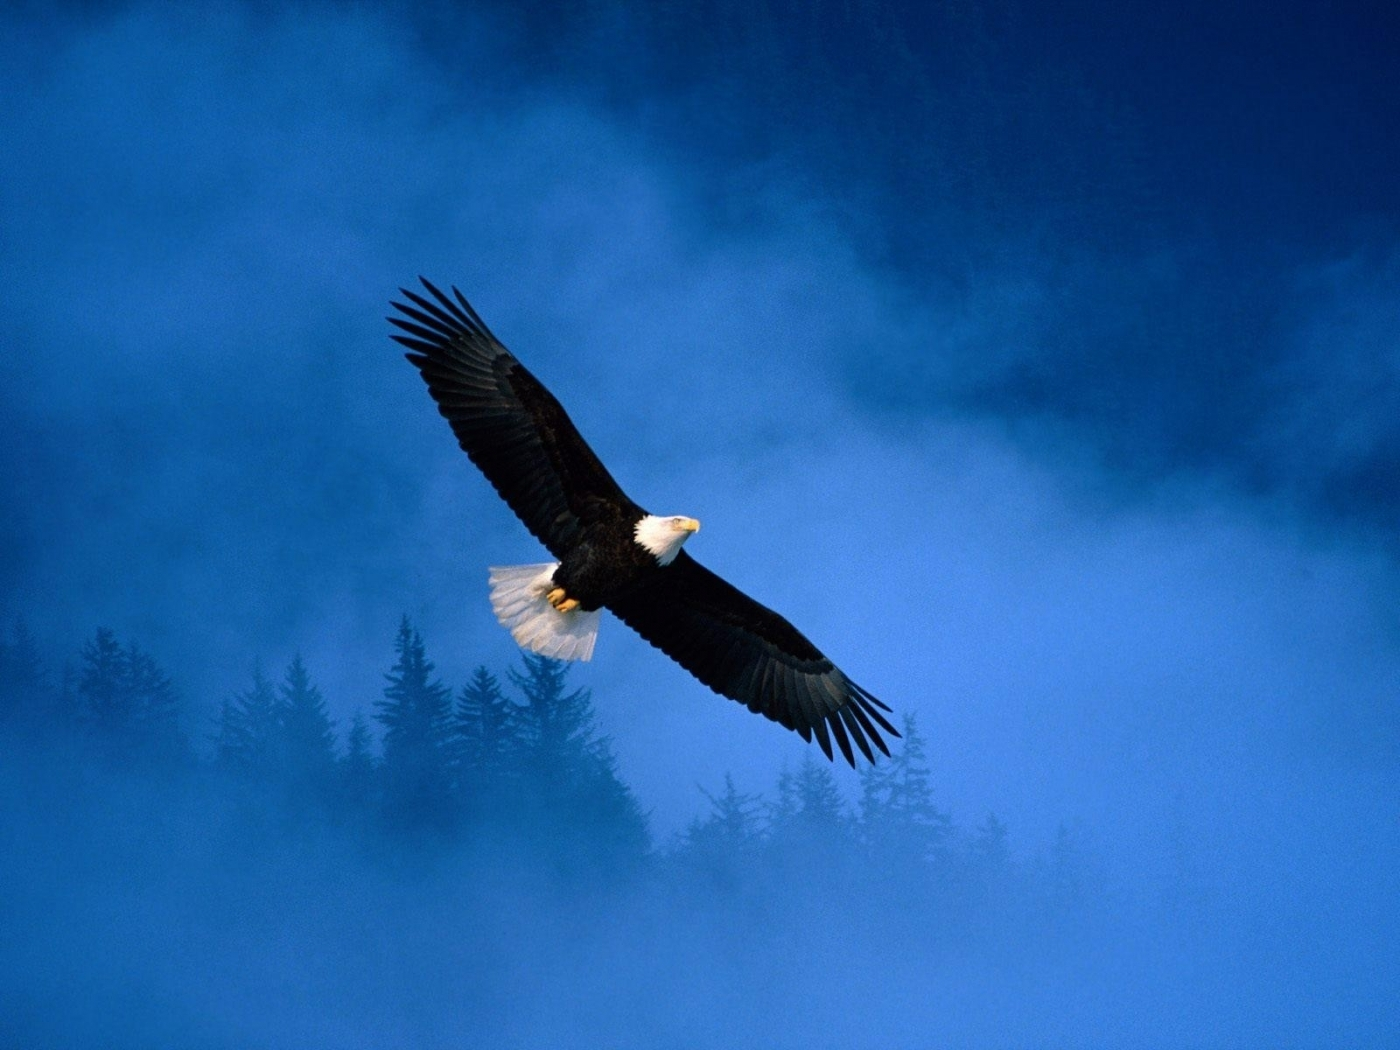 47602 download wallpaper Animals, Birds, Eagles screensavers and pictures for free